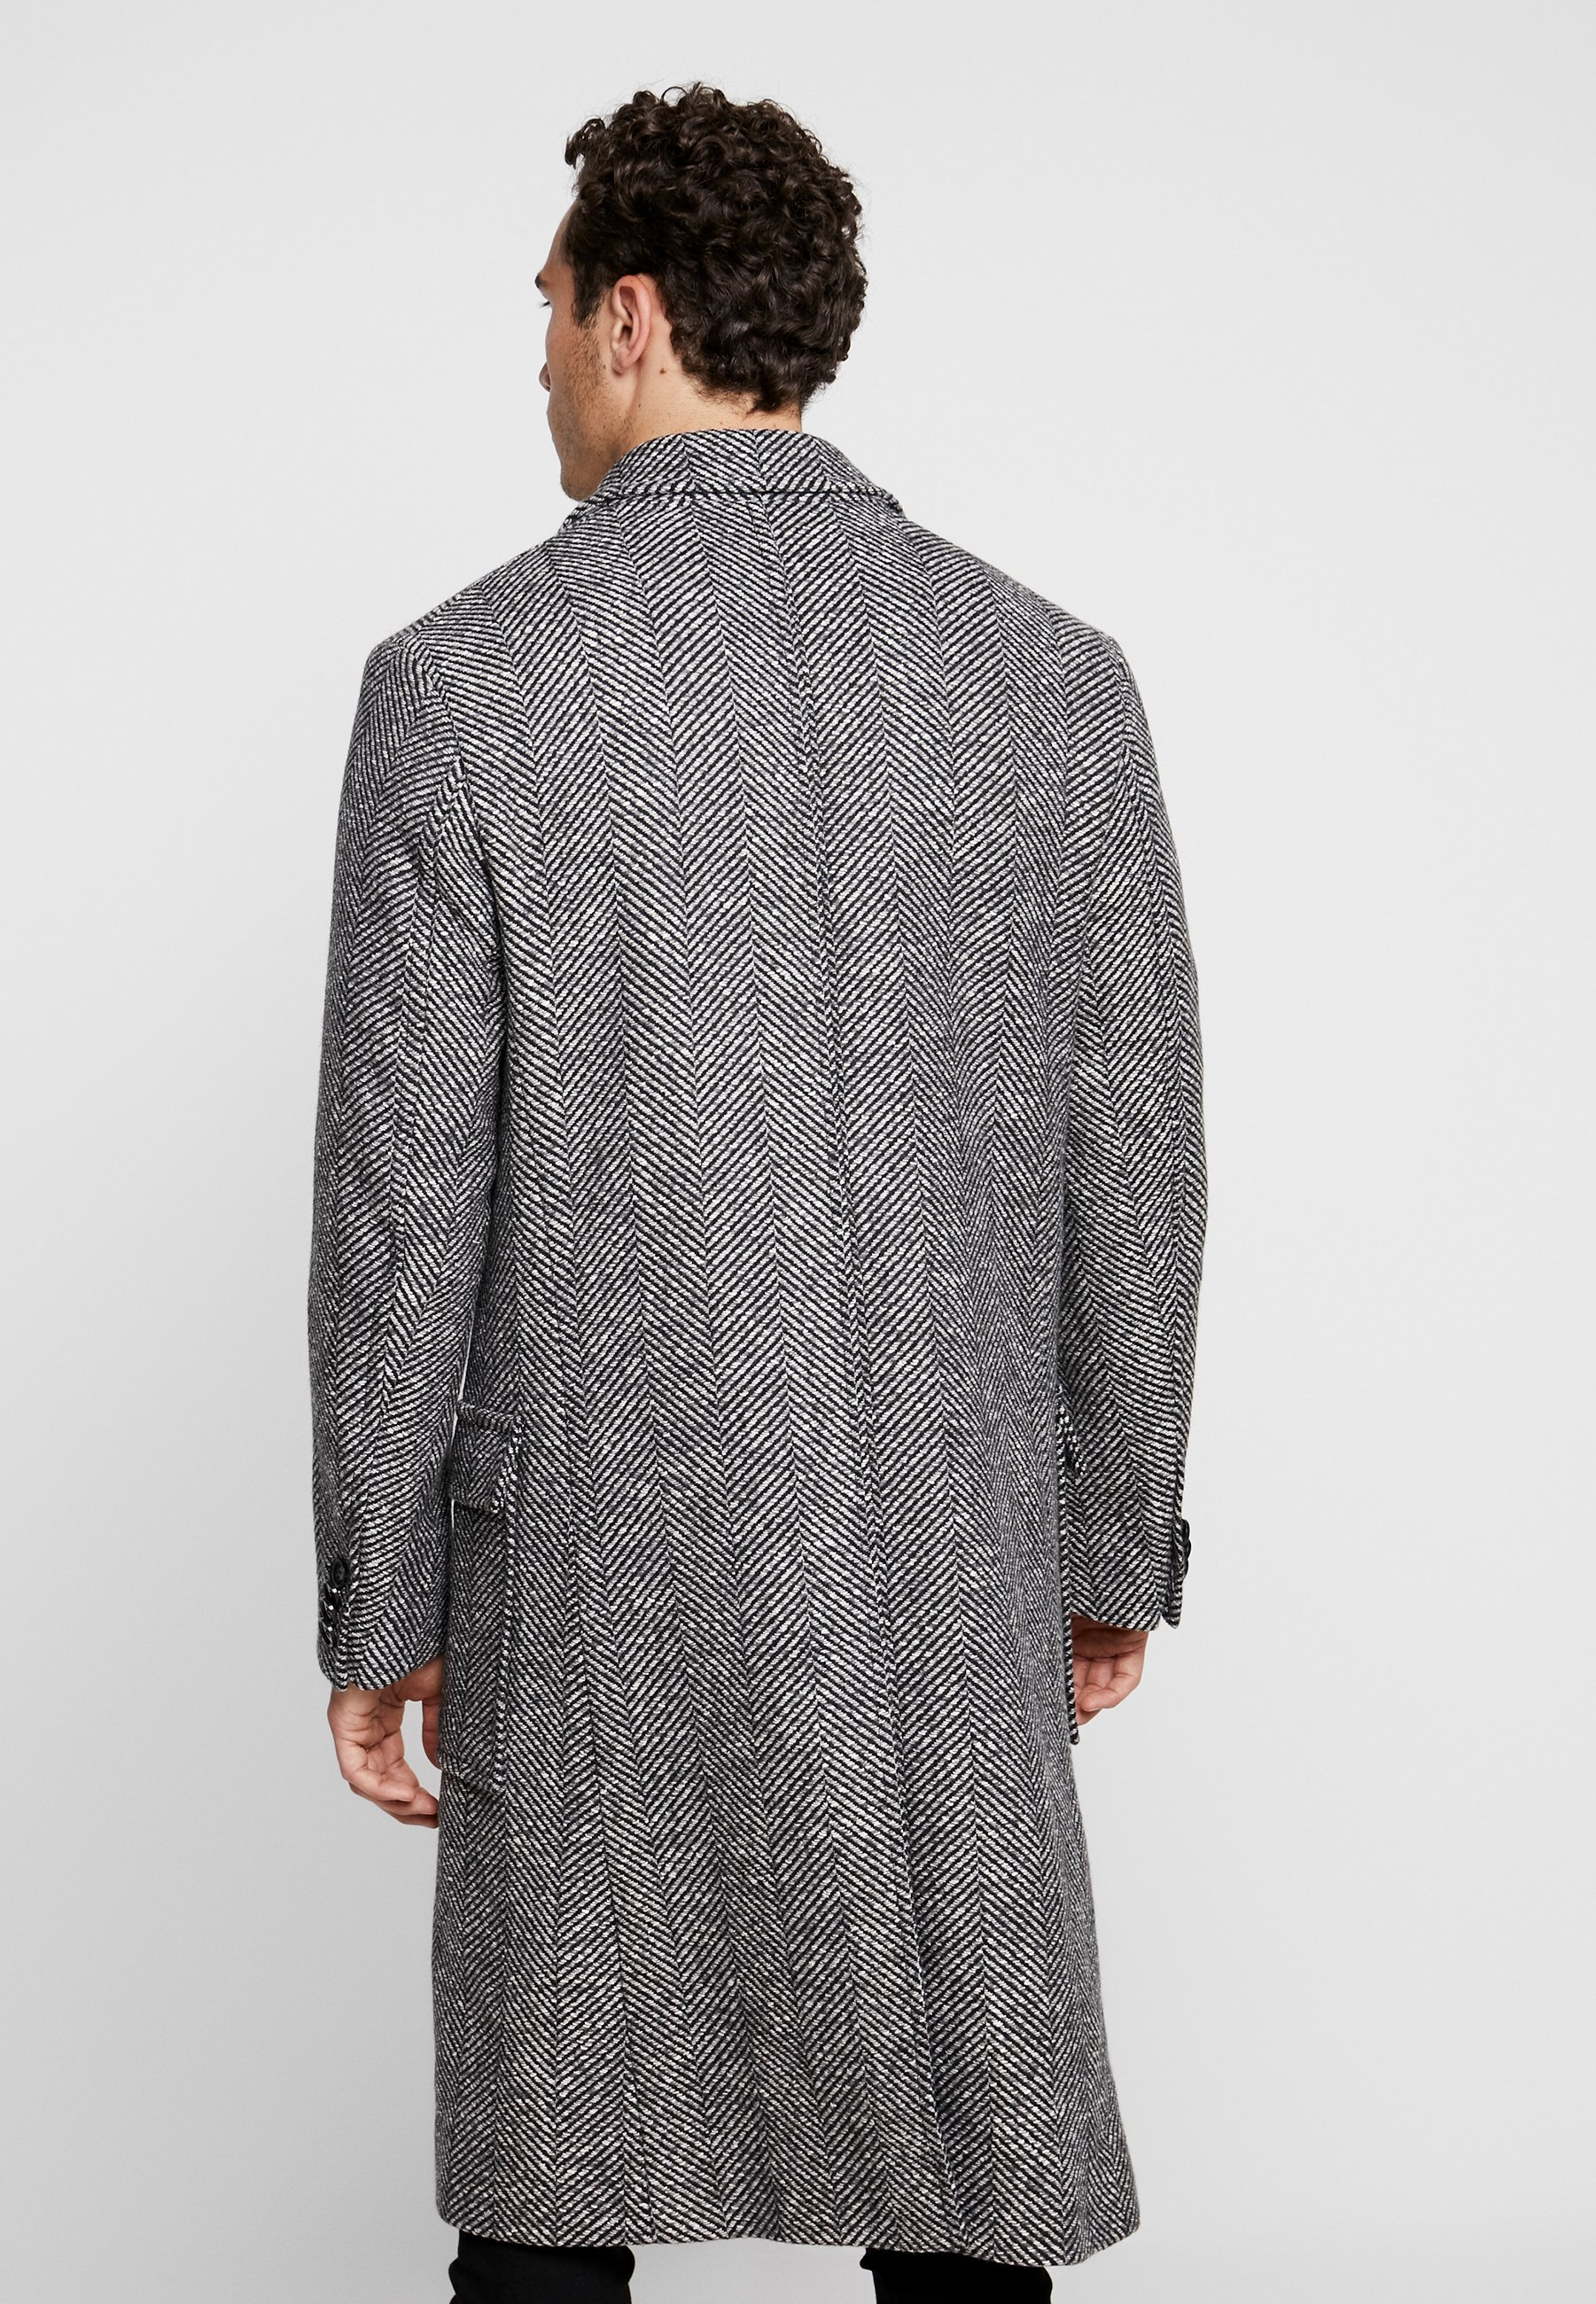 Tailored Exclusive Calvin CrombyManteau Grey Classique Herringbone Klein MGqSUpzV